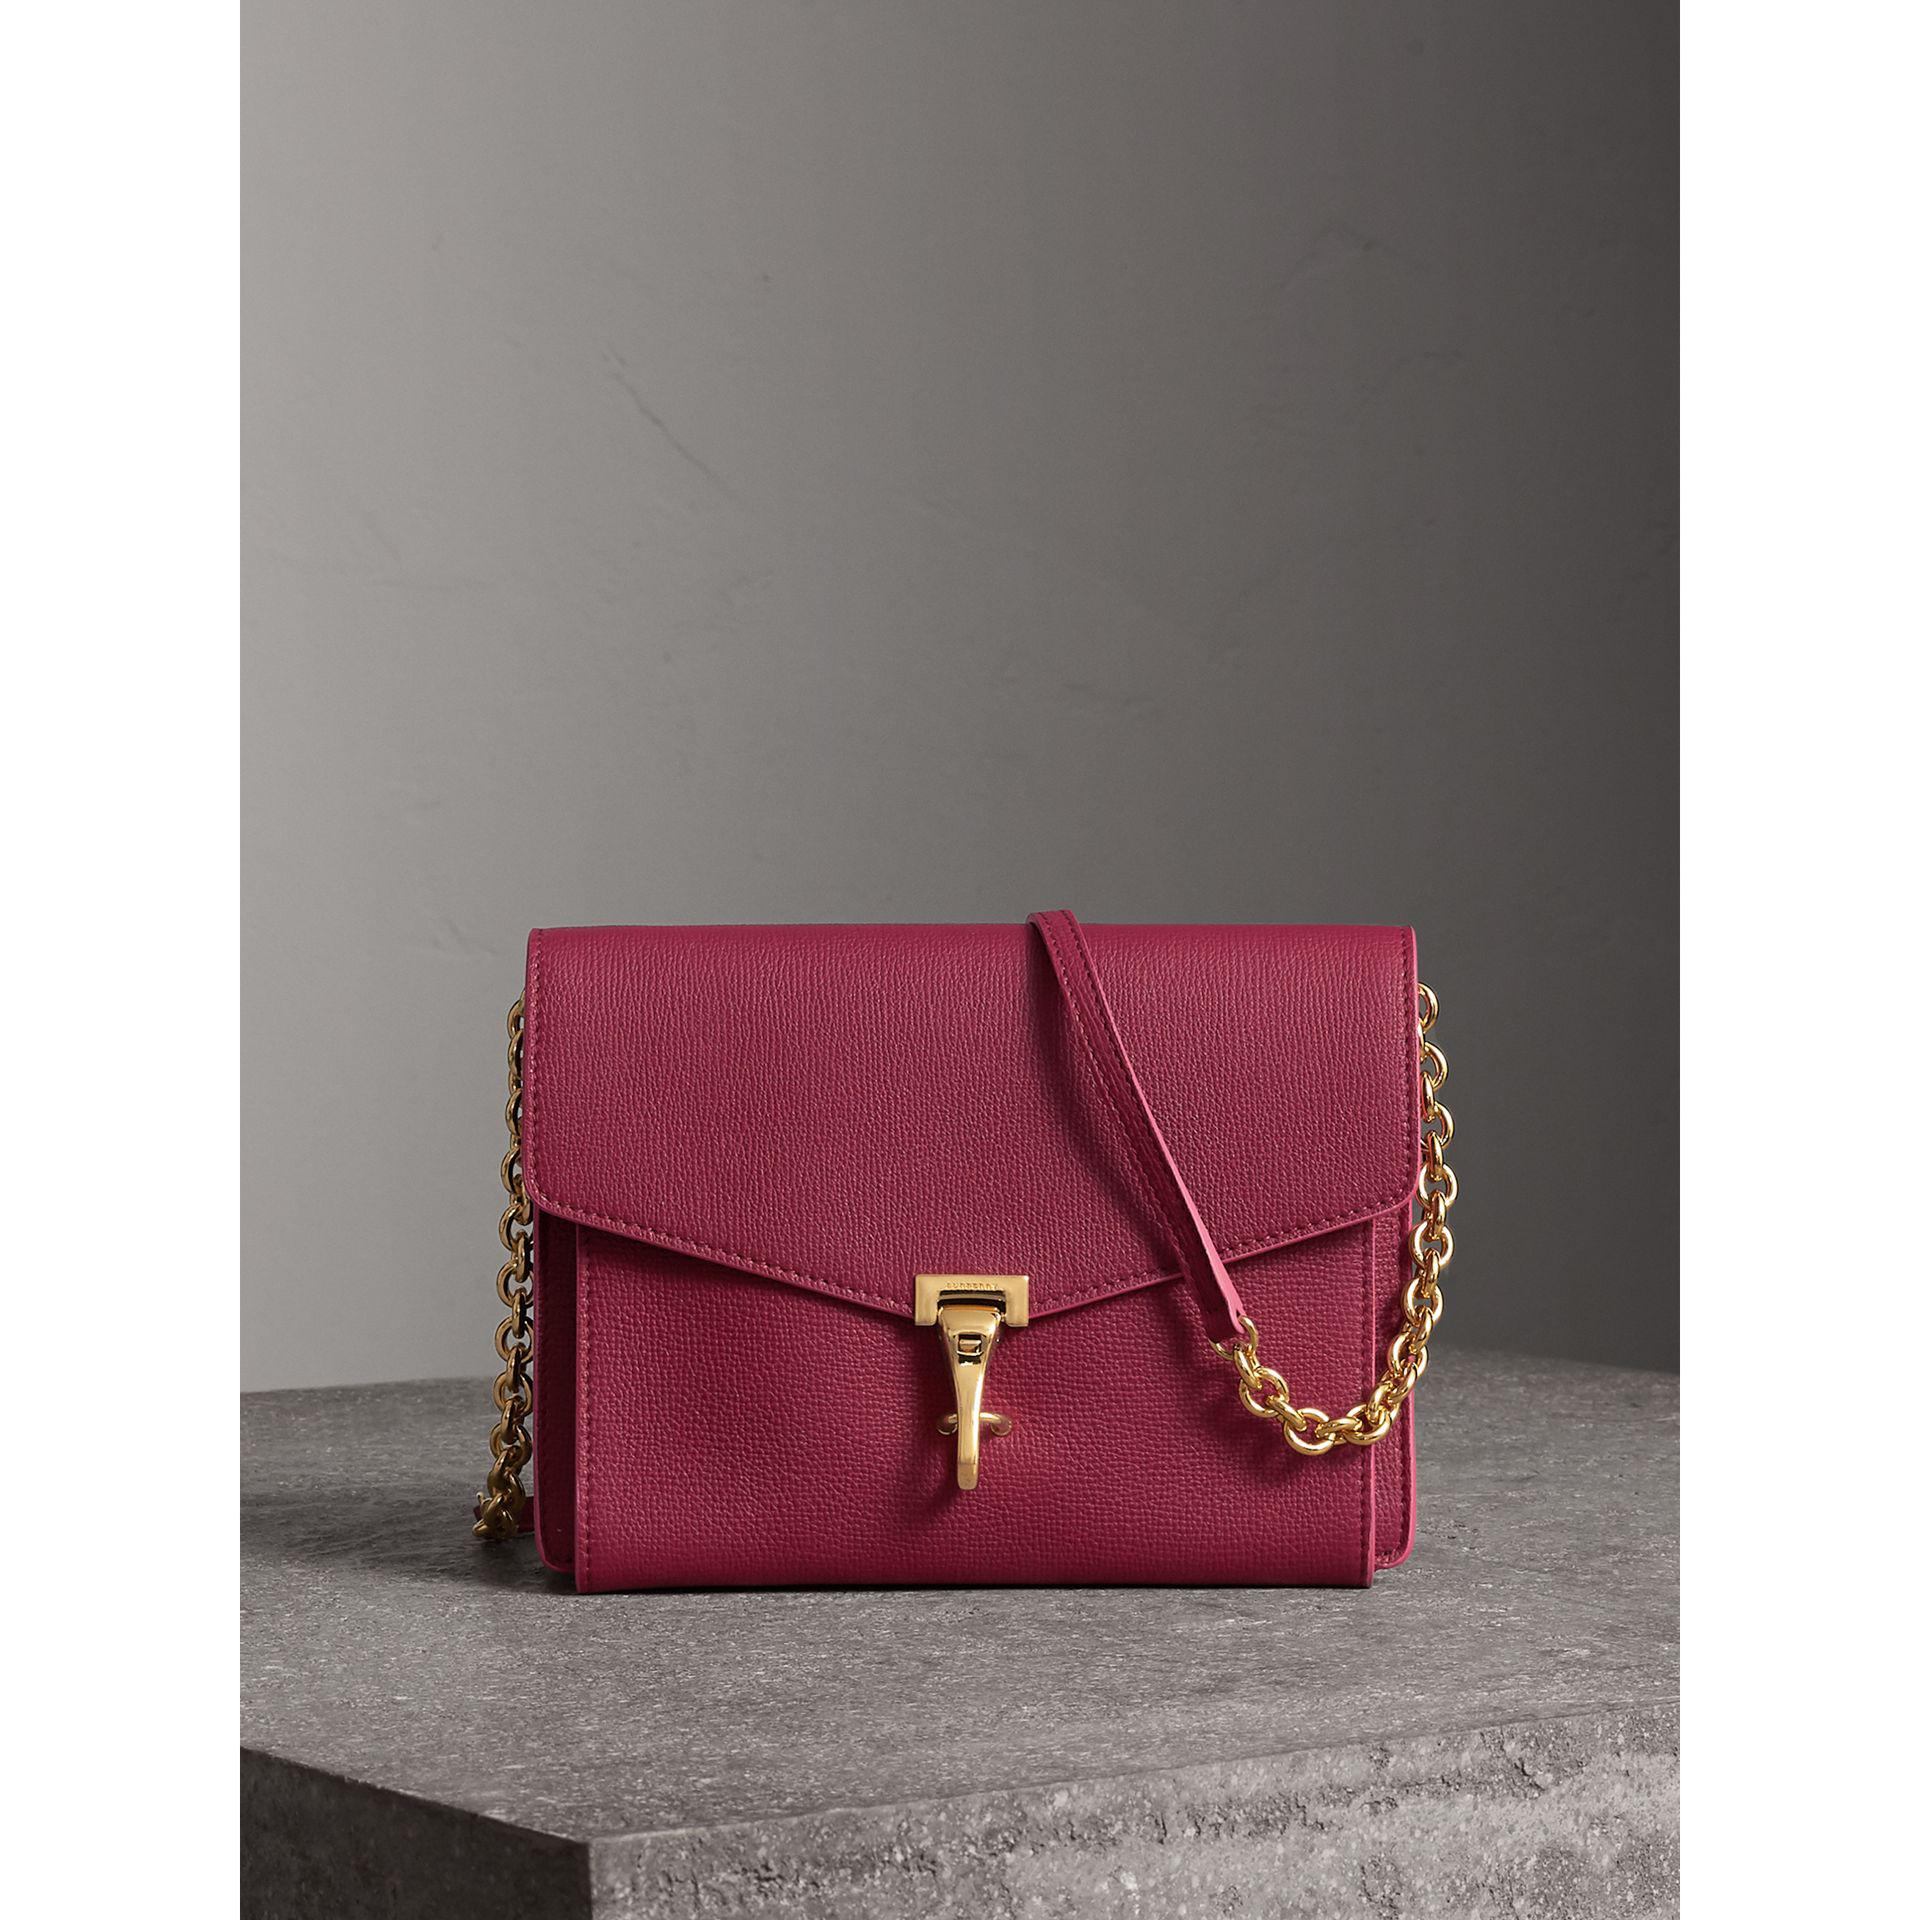 1f75d71d7fb1 Burberry Small Grainy Leather Crossbody Bag - Women